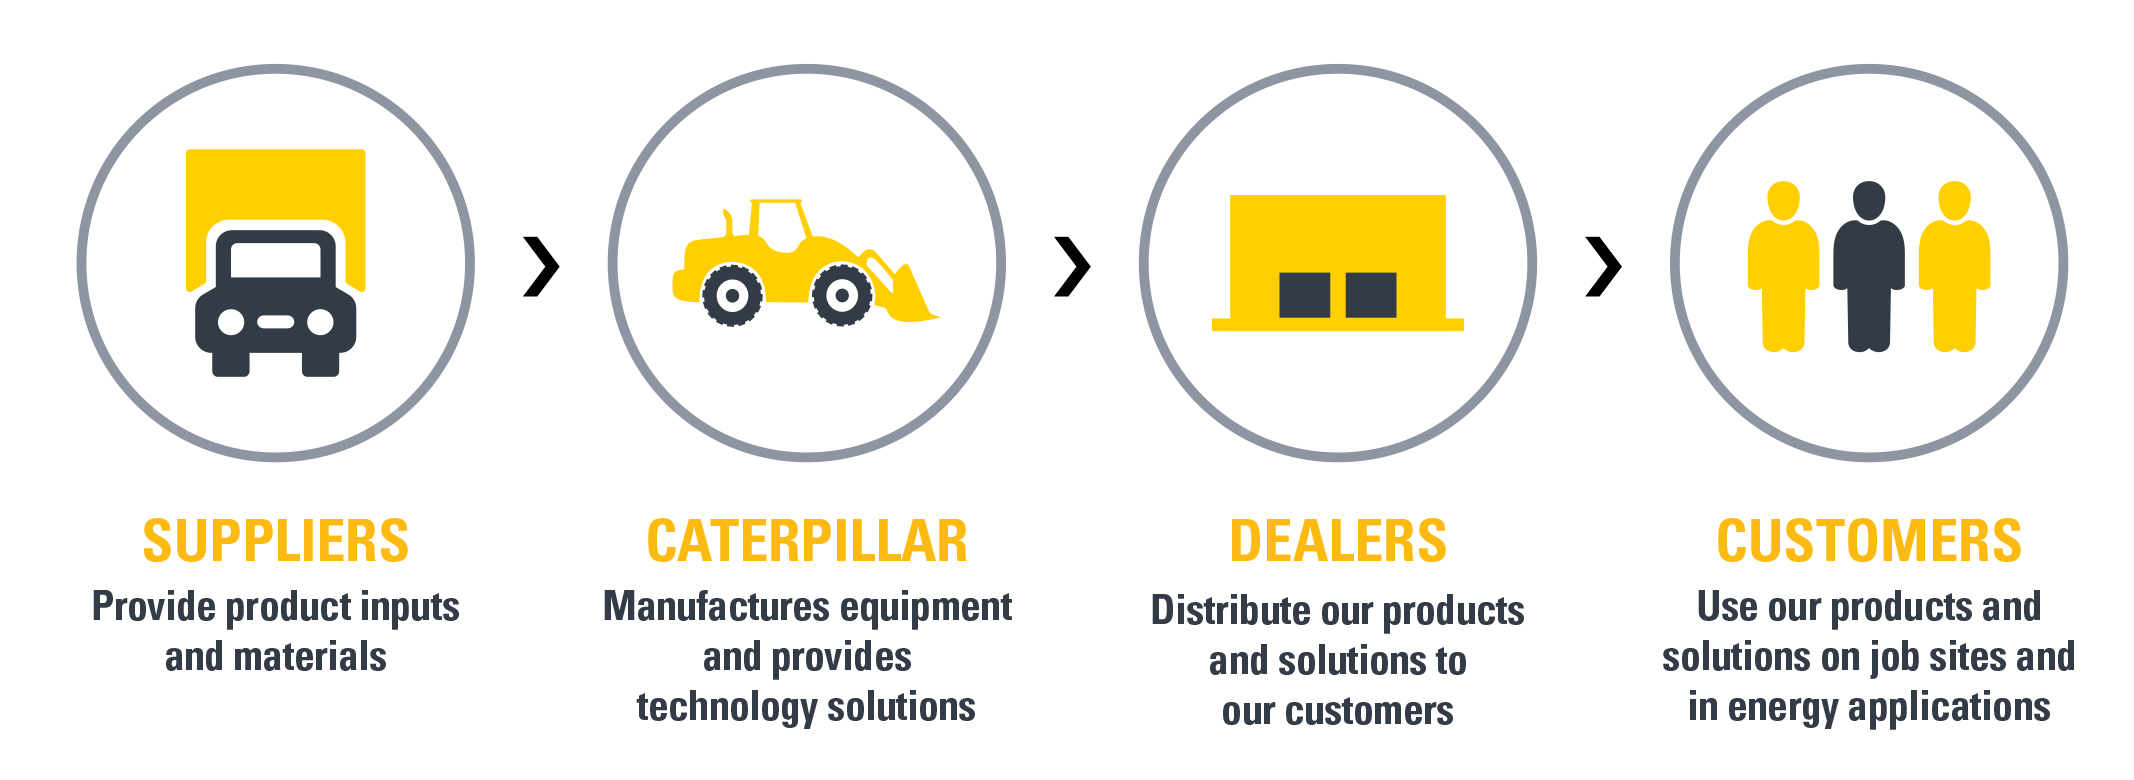 Caterpillar's Integrated Value Chain